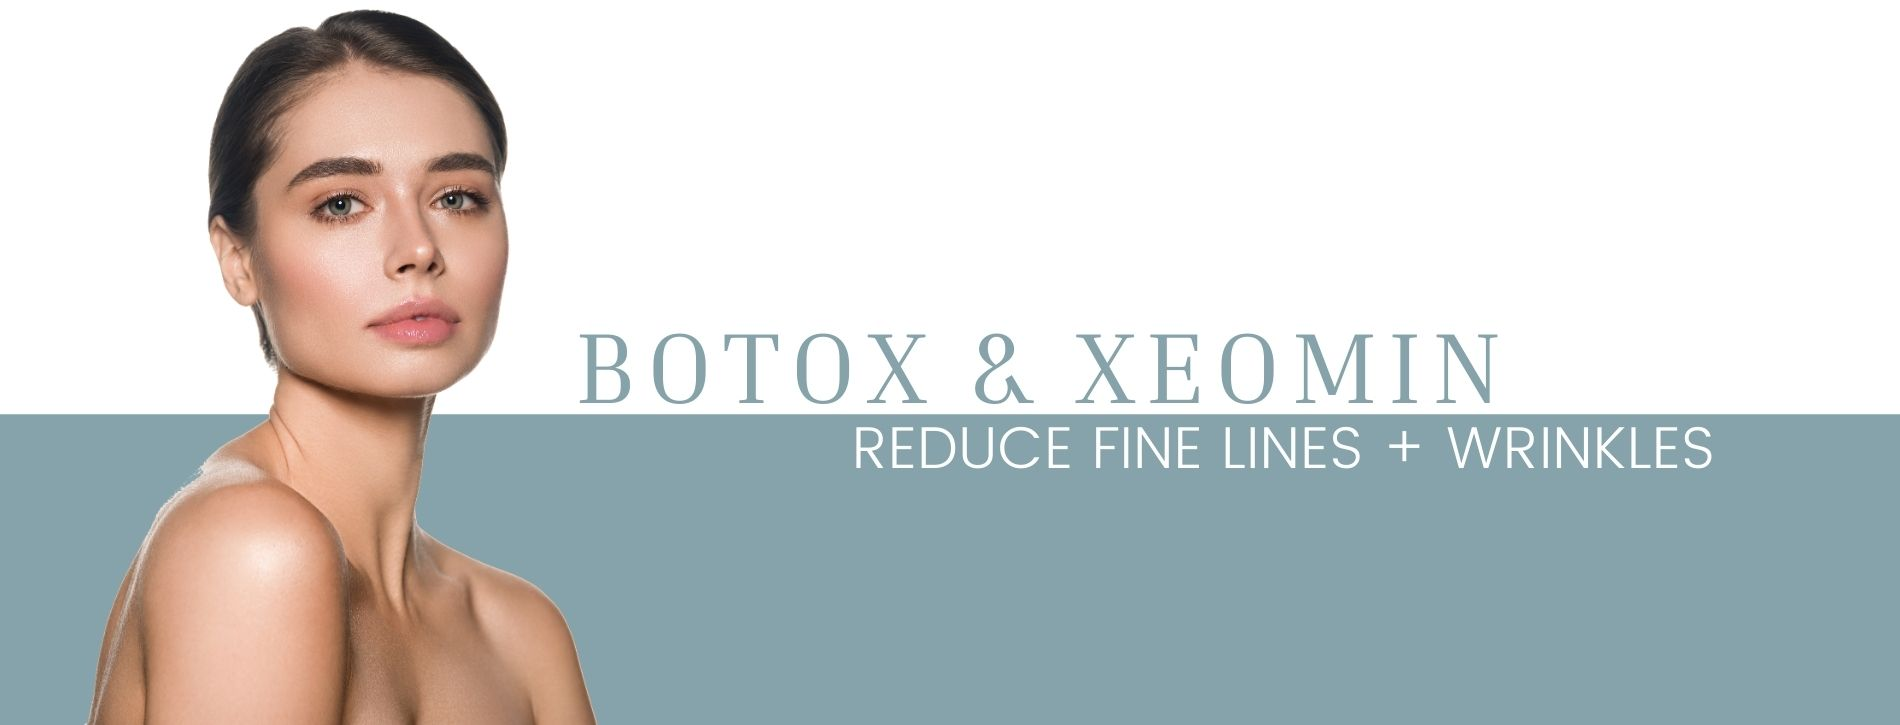 botox and xeomin services